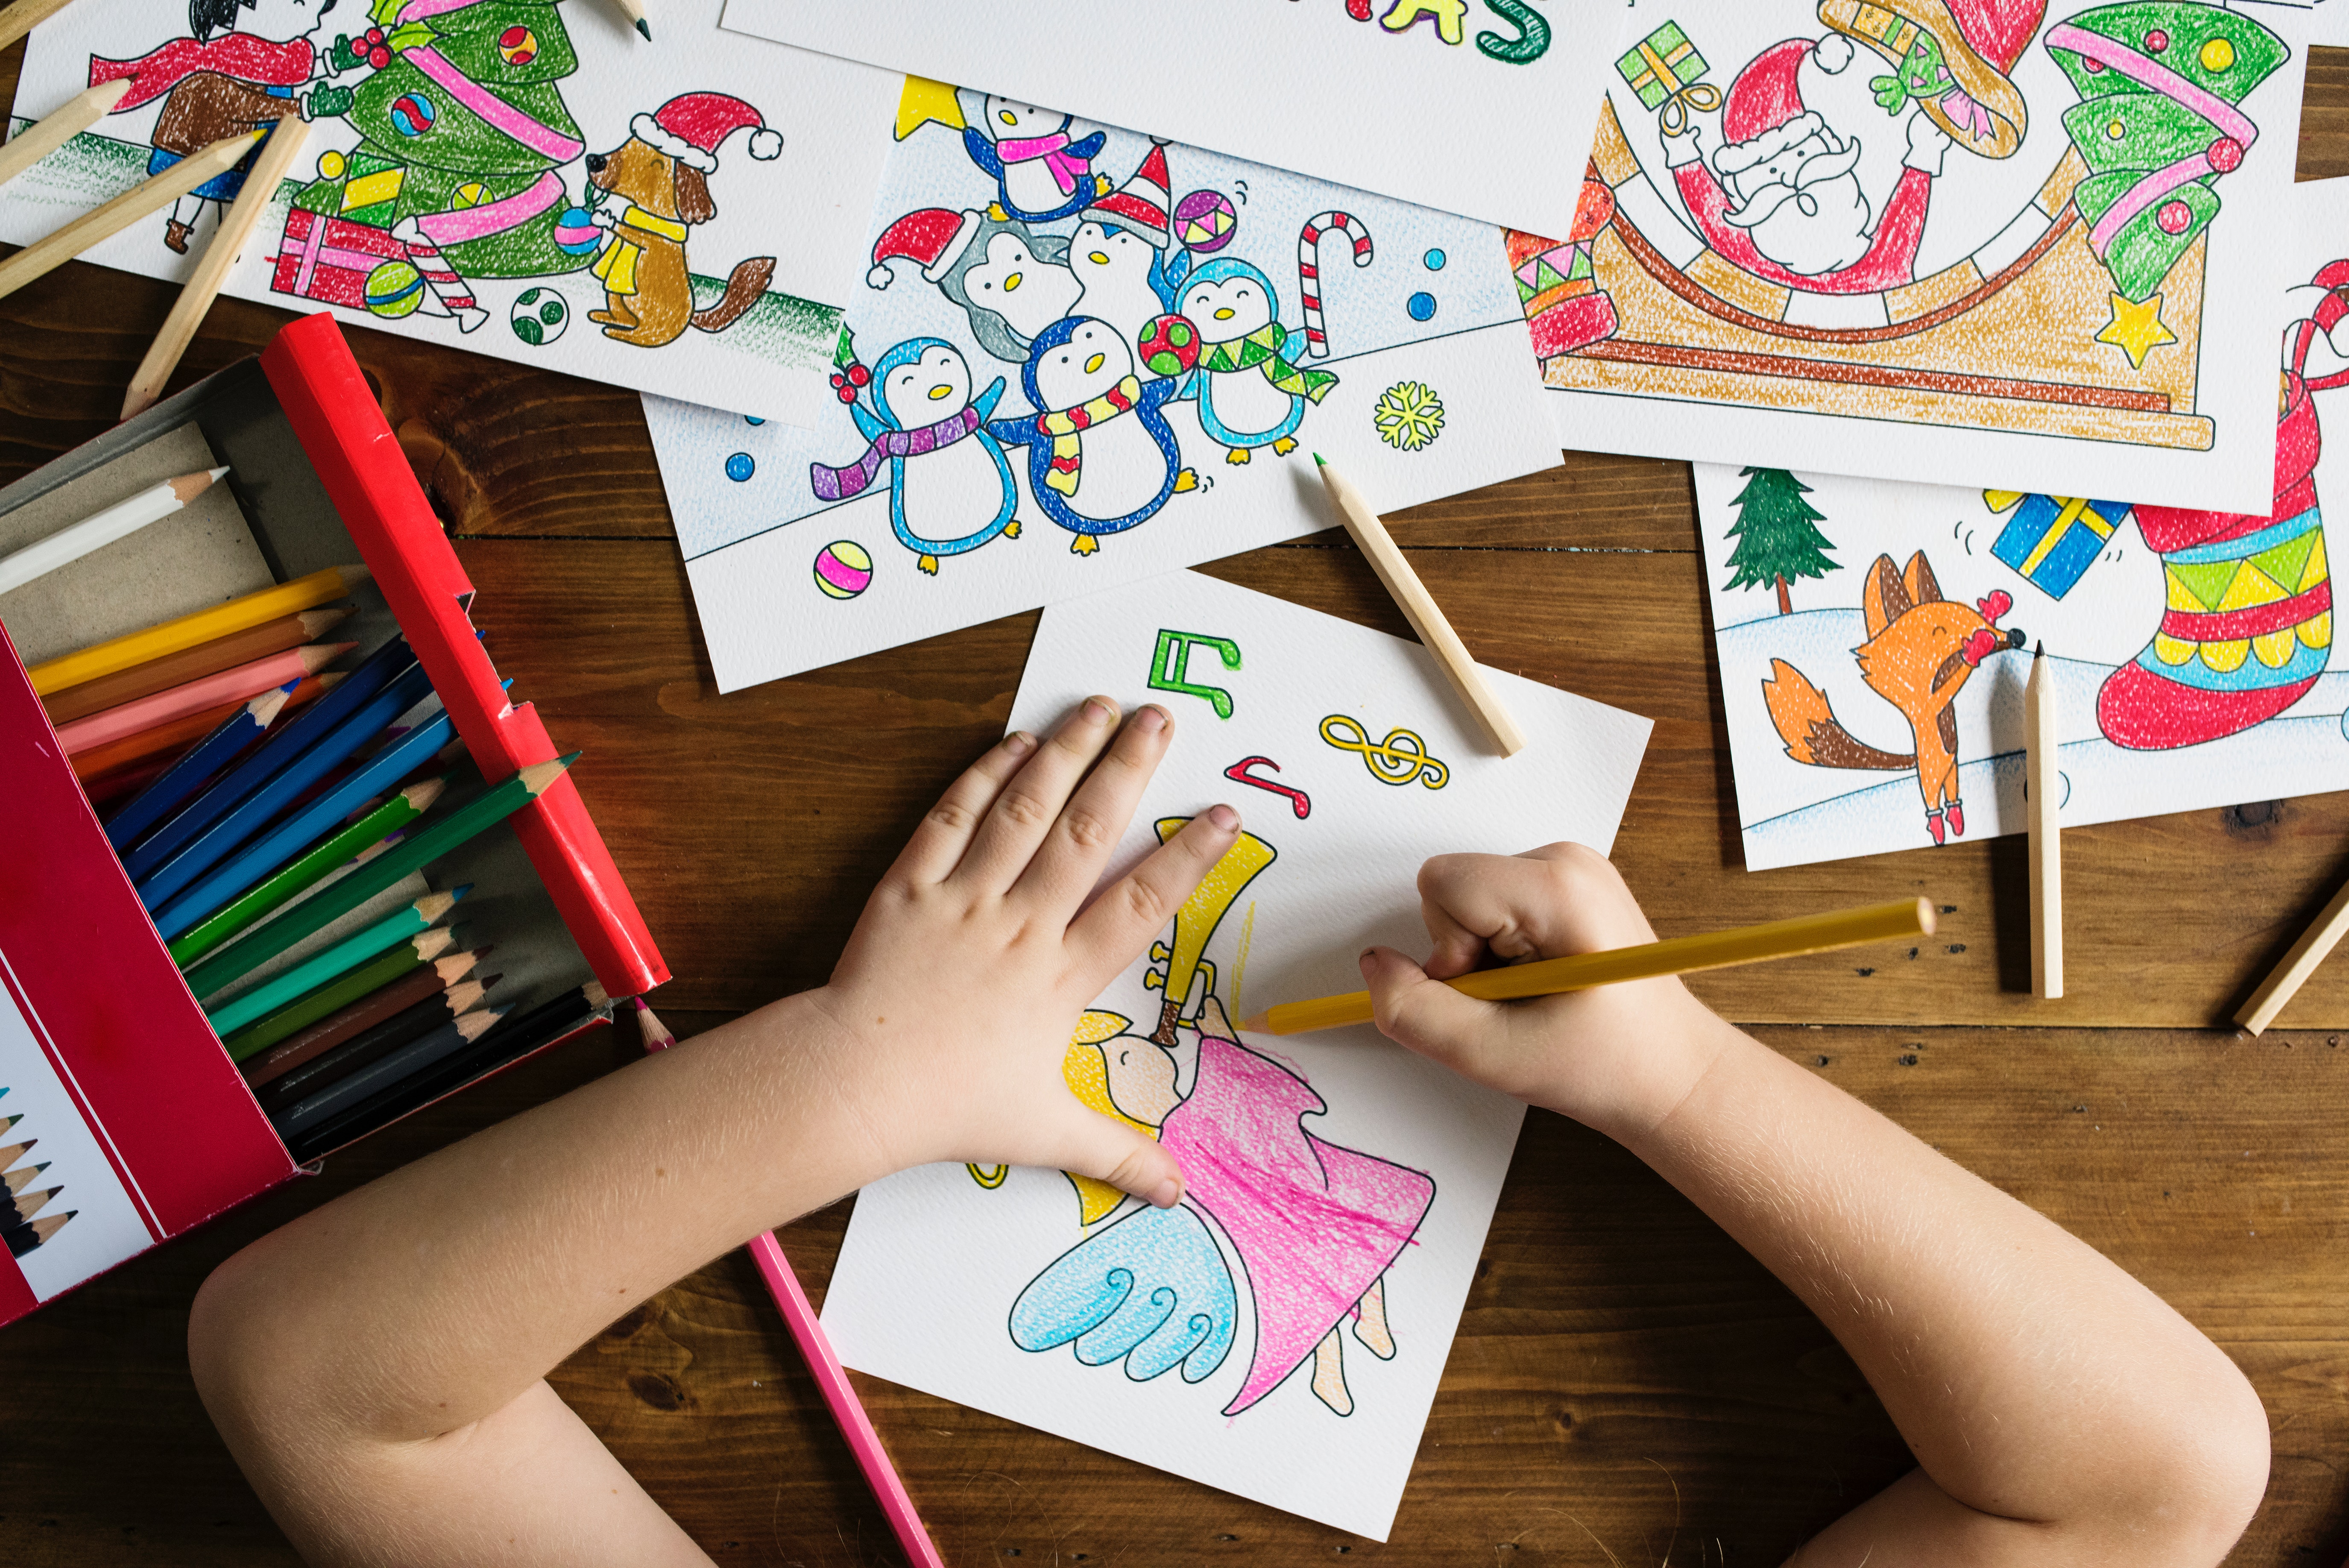 Top Angle Photo of Child Holding Pencil While Drawing Female Angel Playing Wind Instrument, Paper, Pencils, Kid, Indoors, HQ Photo